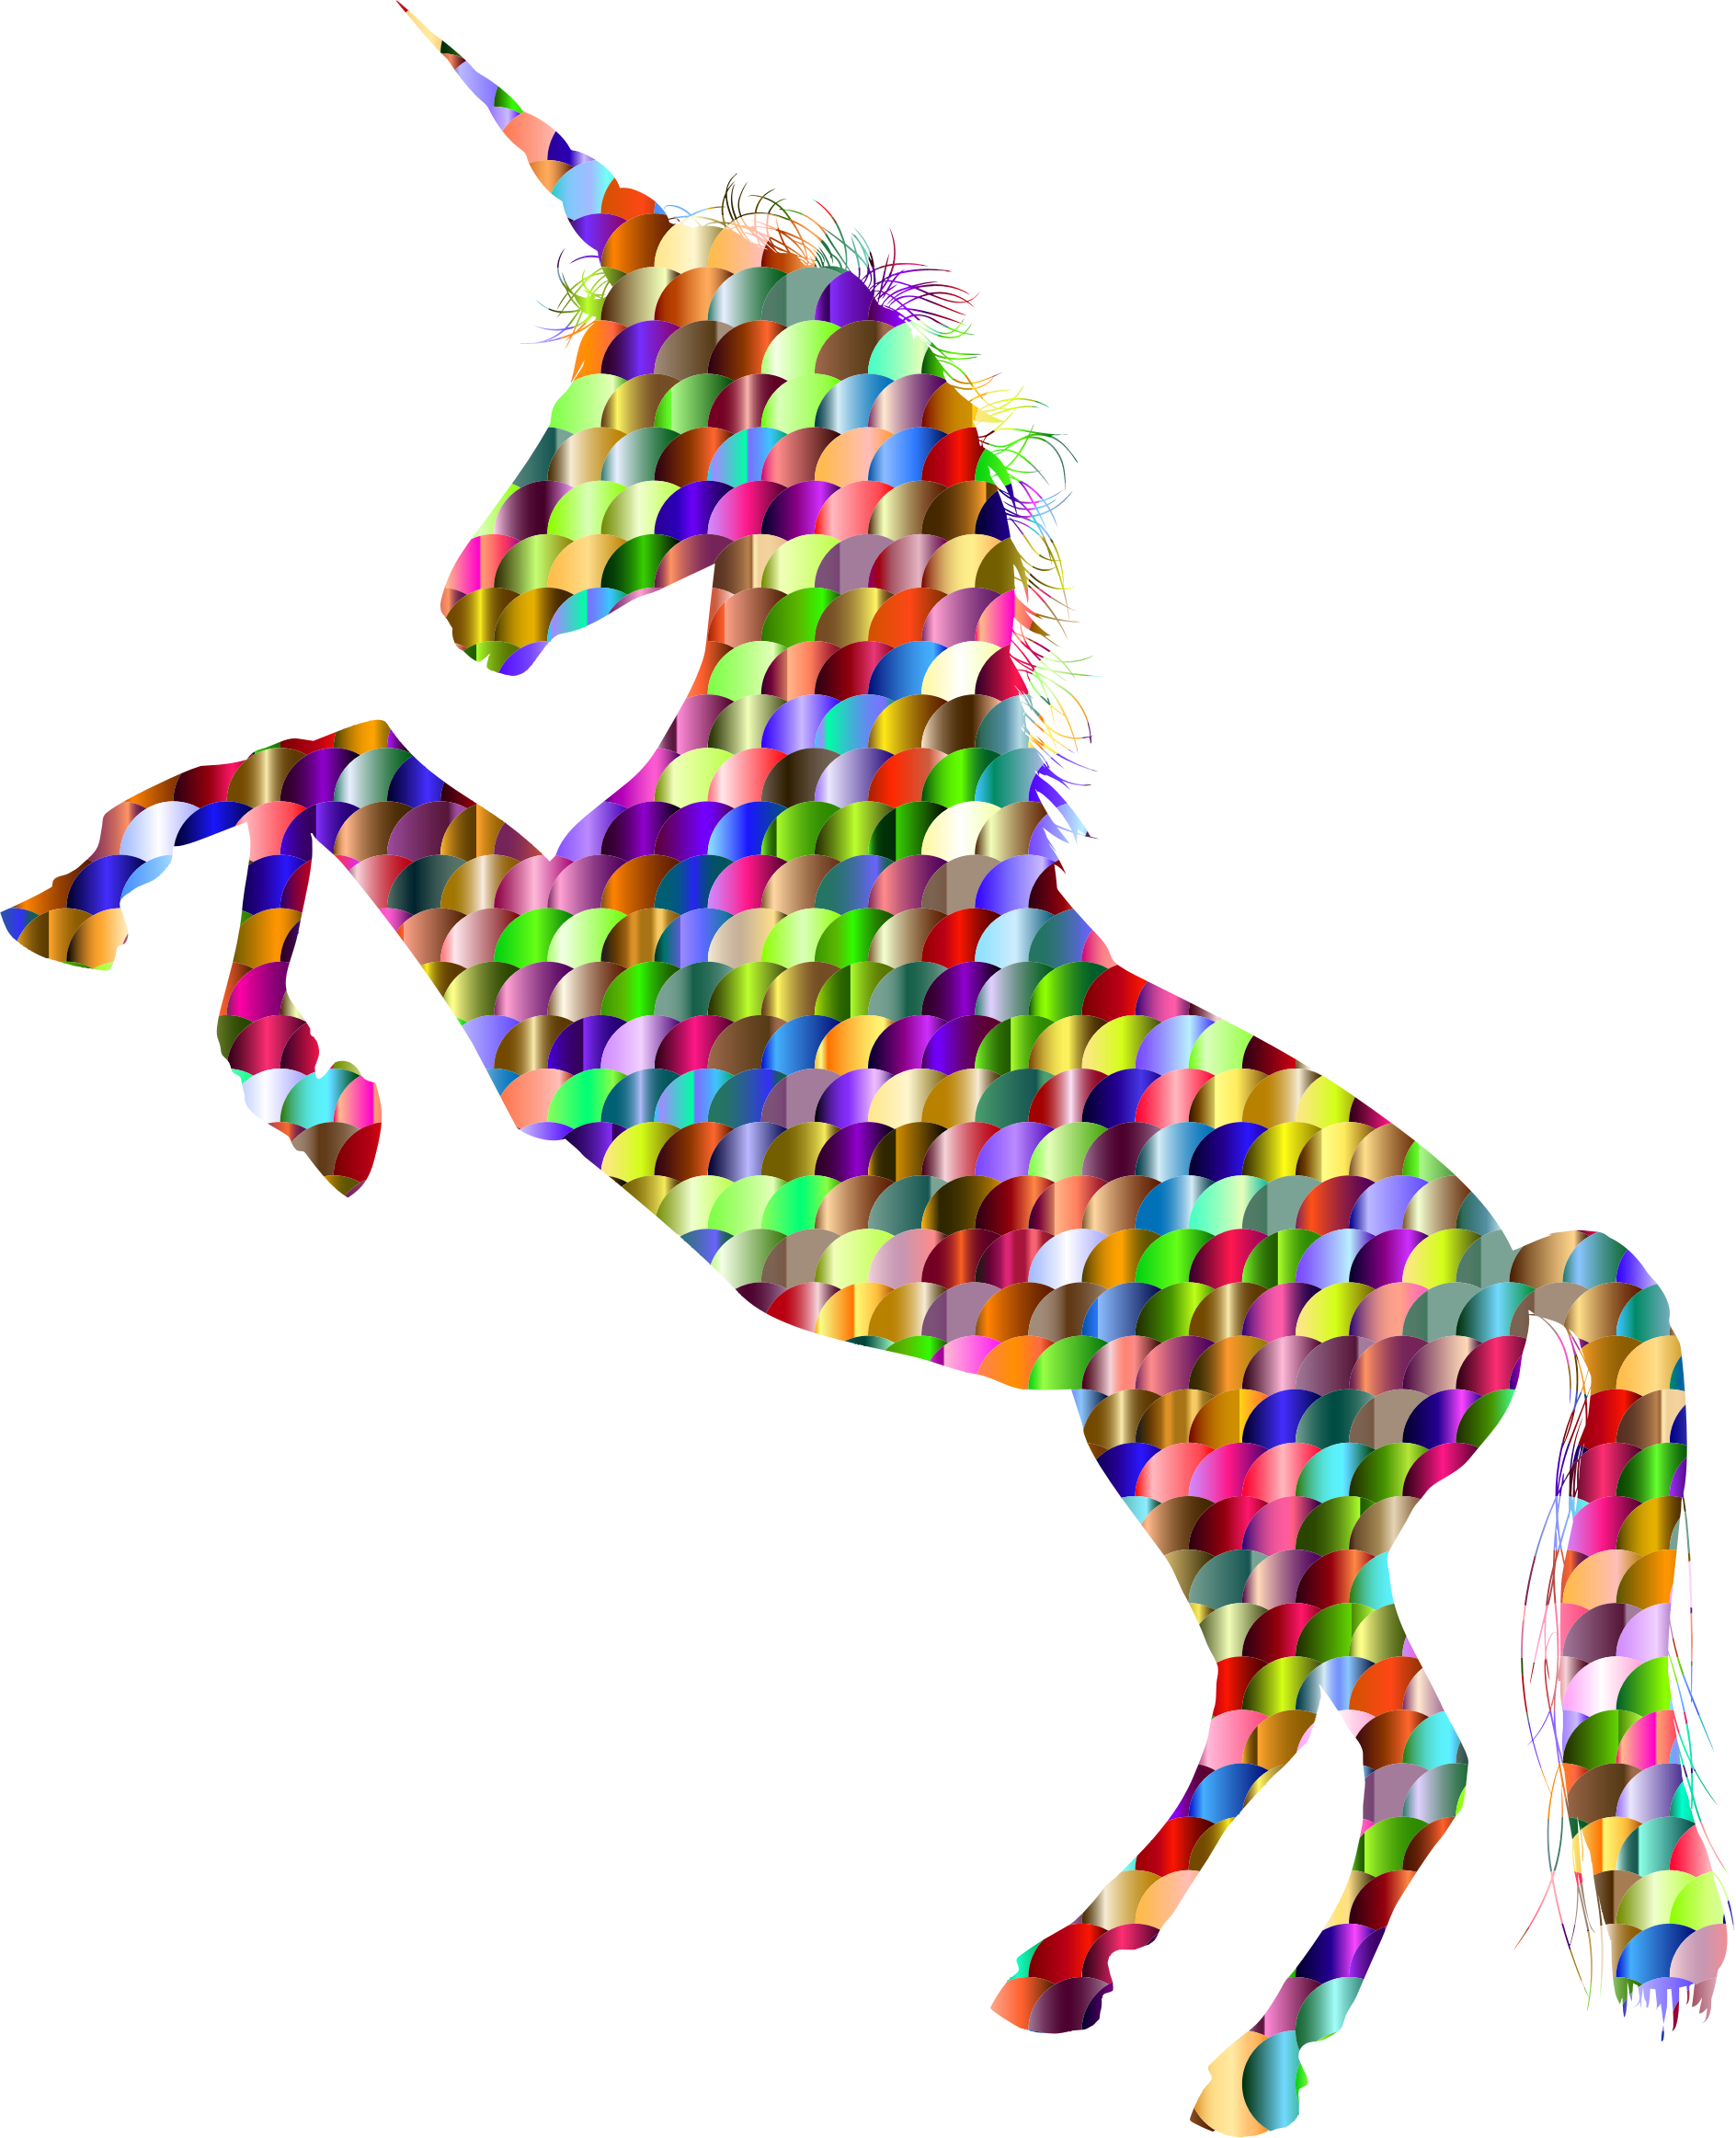 Chromatic Scales Unicorn Silhouette by GDJ